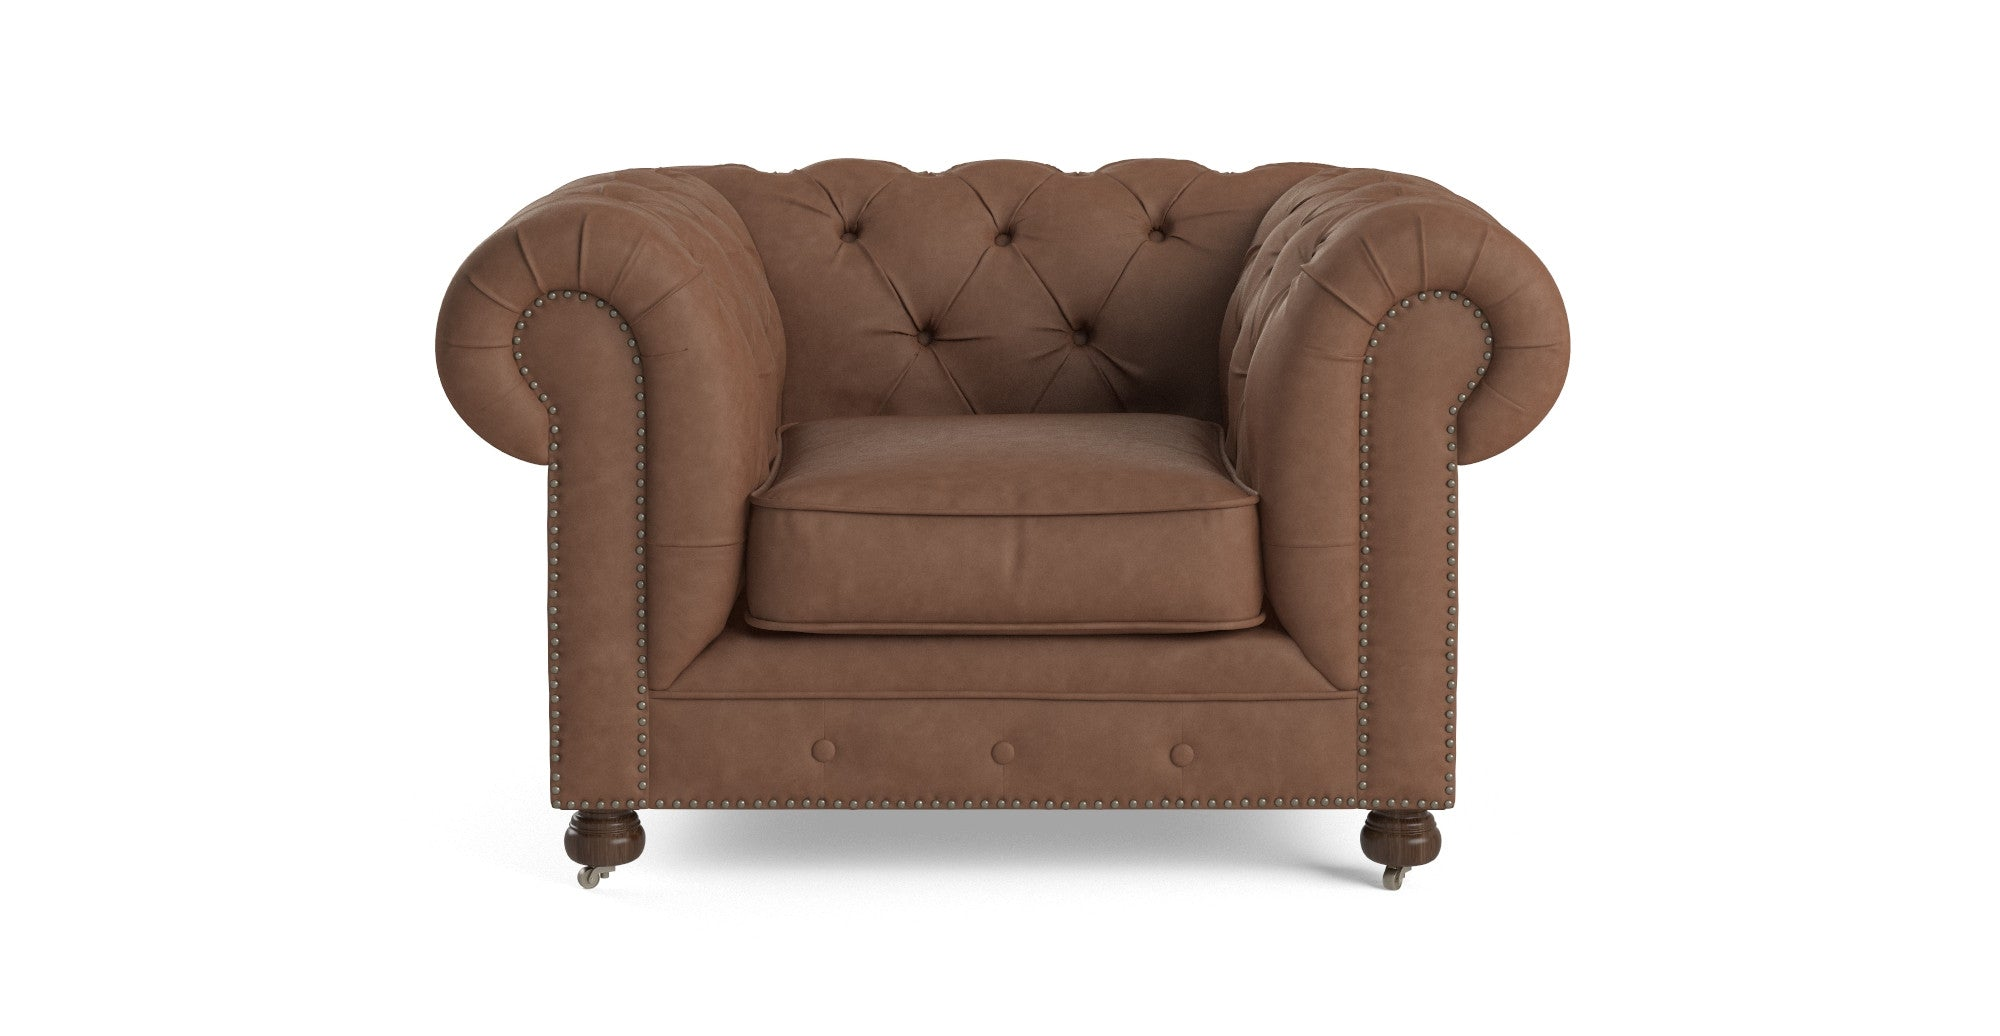 Small Armchair For Bedroom Bedroom Chairs For Sale Online In Australia Brosa